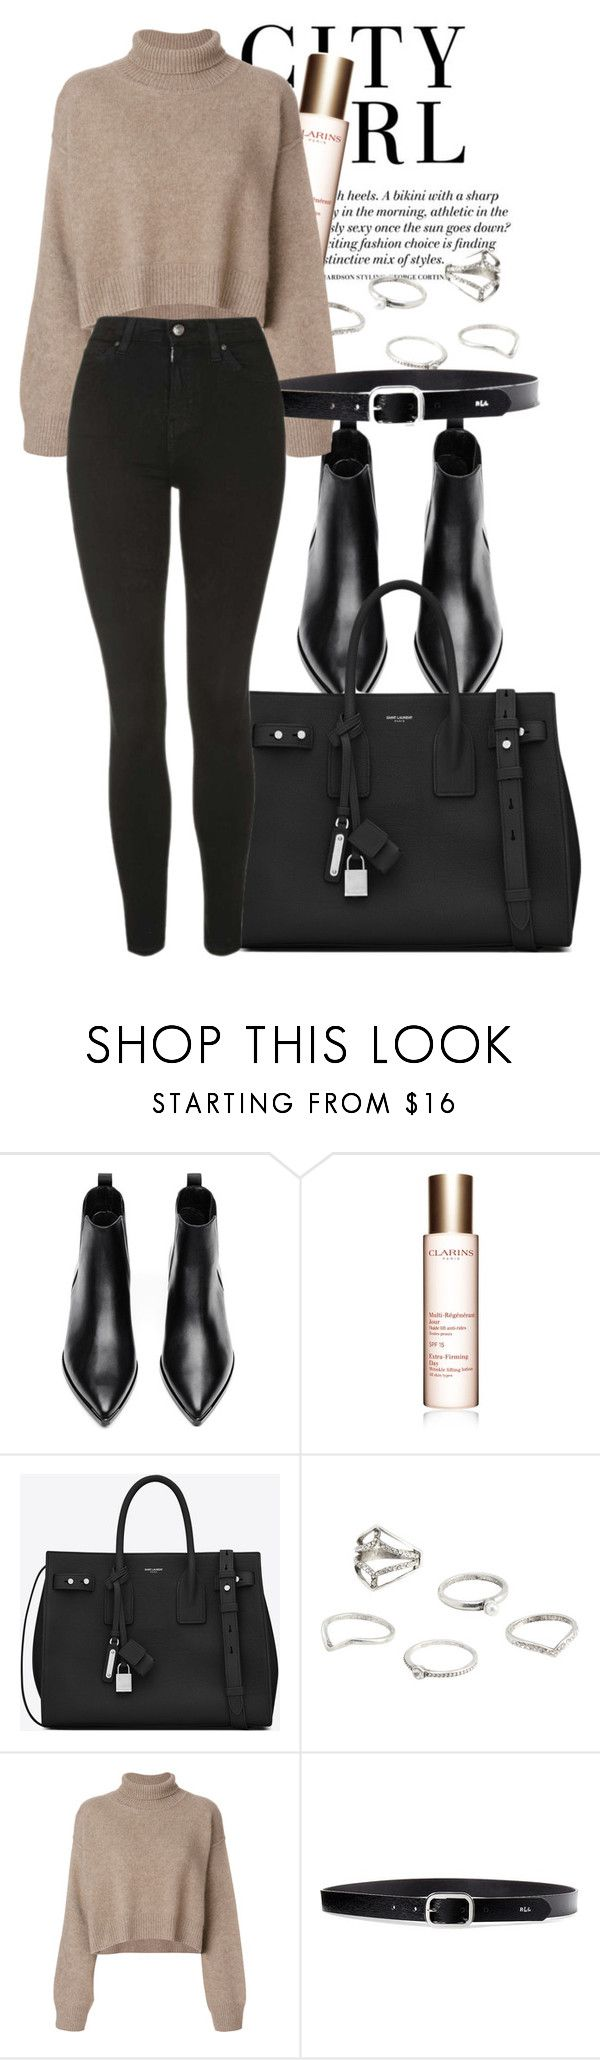 """""""Untitled #162"""" by karenxcii ❤ liked on Polyvore featuring Acne Studios, H&M, Clarins, Yves Saint Laurent, MANGO, Rejina Pyo, Lauren Ralph Lauren and Topshop"""